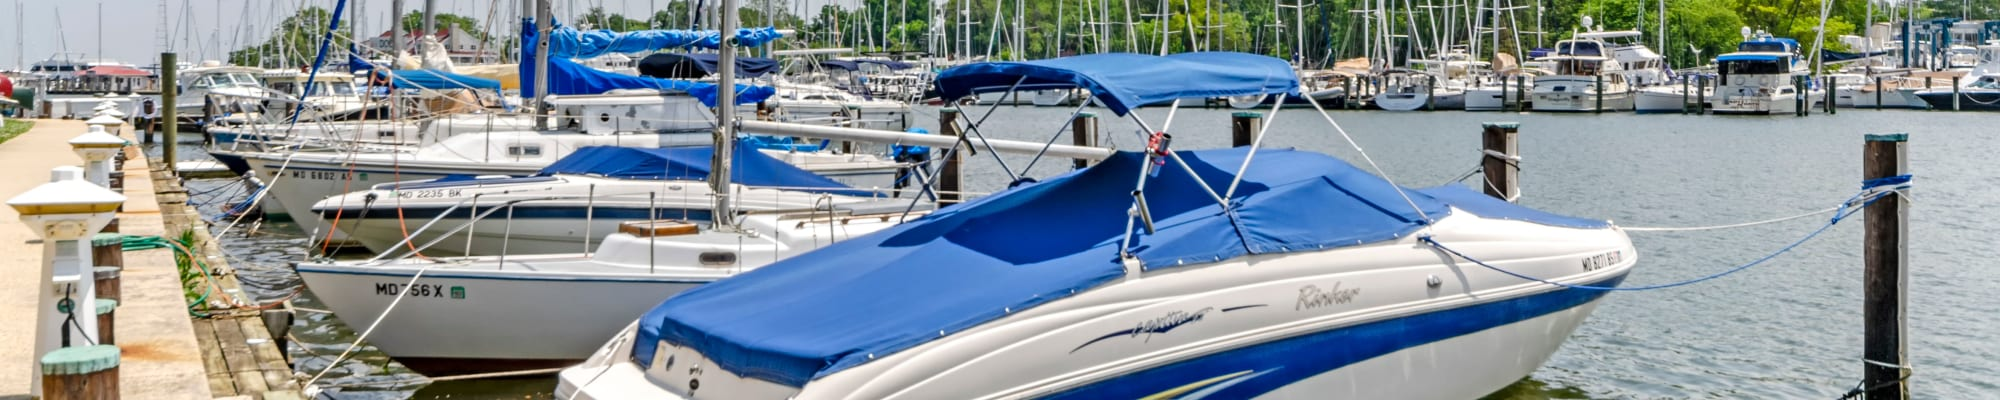 Watergate Pointe Marina at Watergate Pointe in Annapolis, Maryland